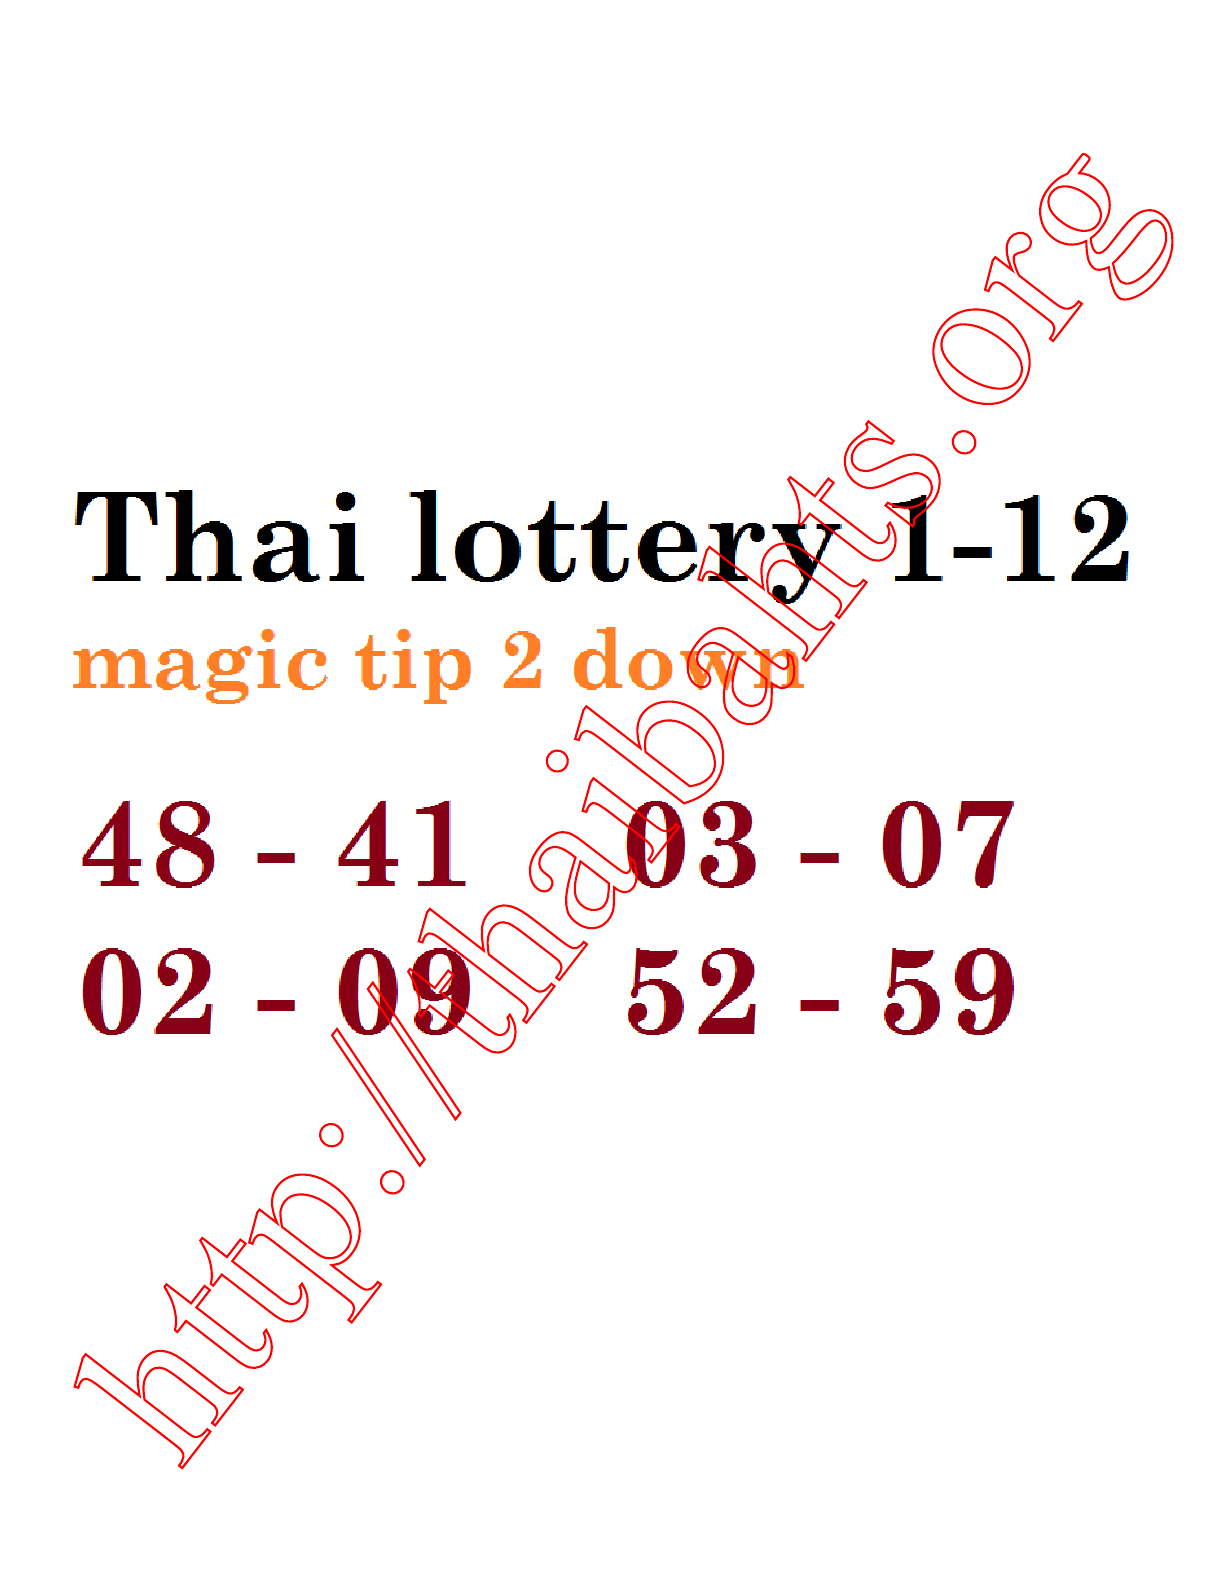 Thai lottery results 1-12-2014